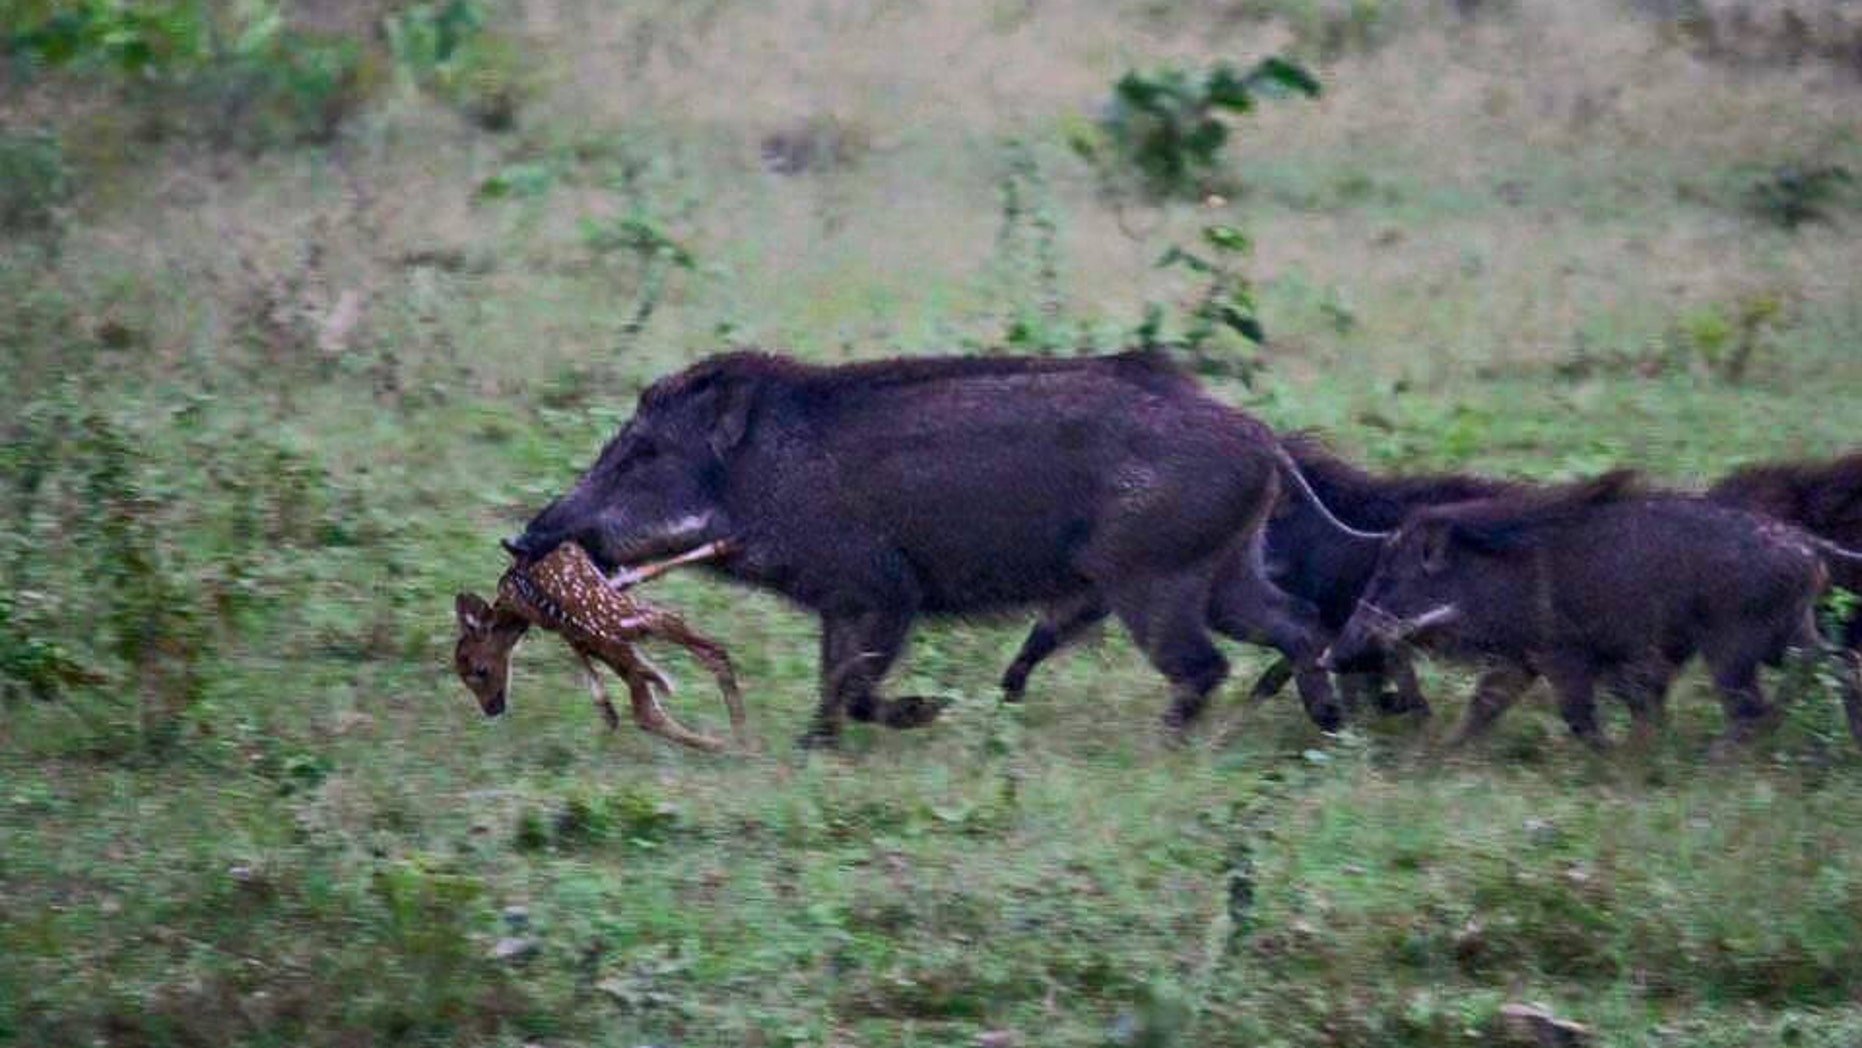 This photo, provided by LouisianaBowhunter.com, shows a herd of wild hogs feasting on a deer fawn.